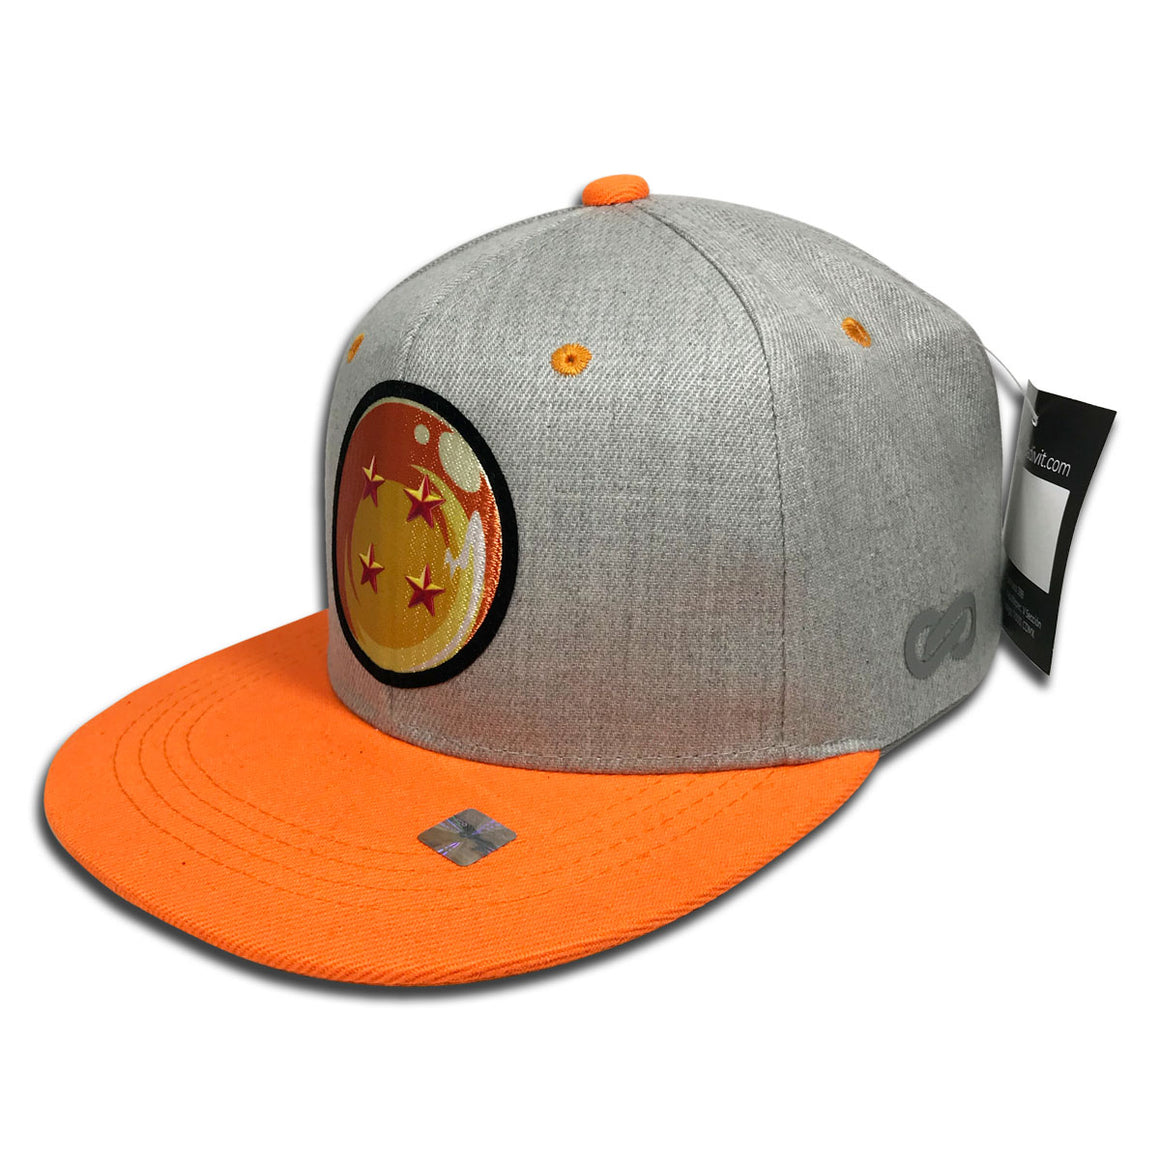 Gorra Dragon Ball Super Esfera GREY/ORANGE - SNAPBACK MX